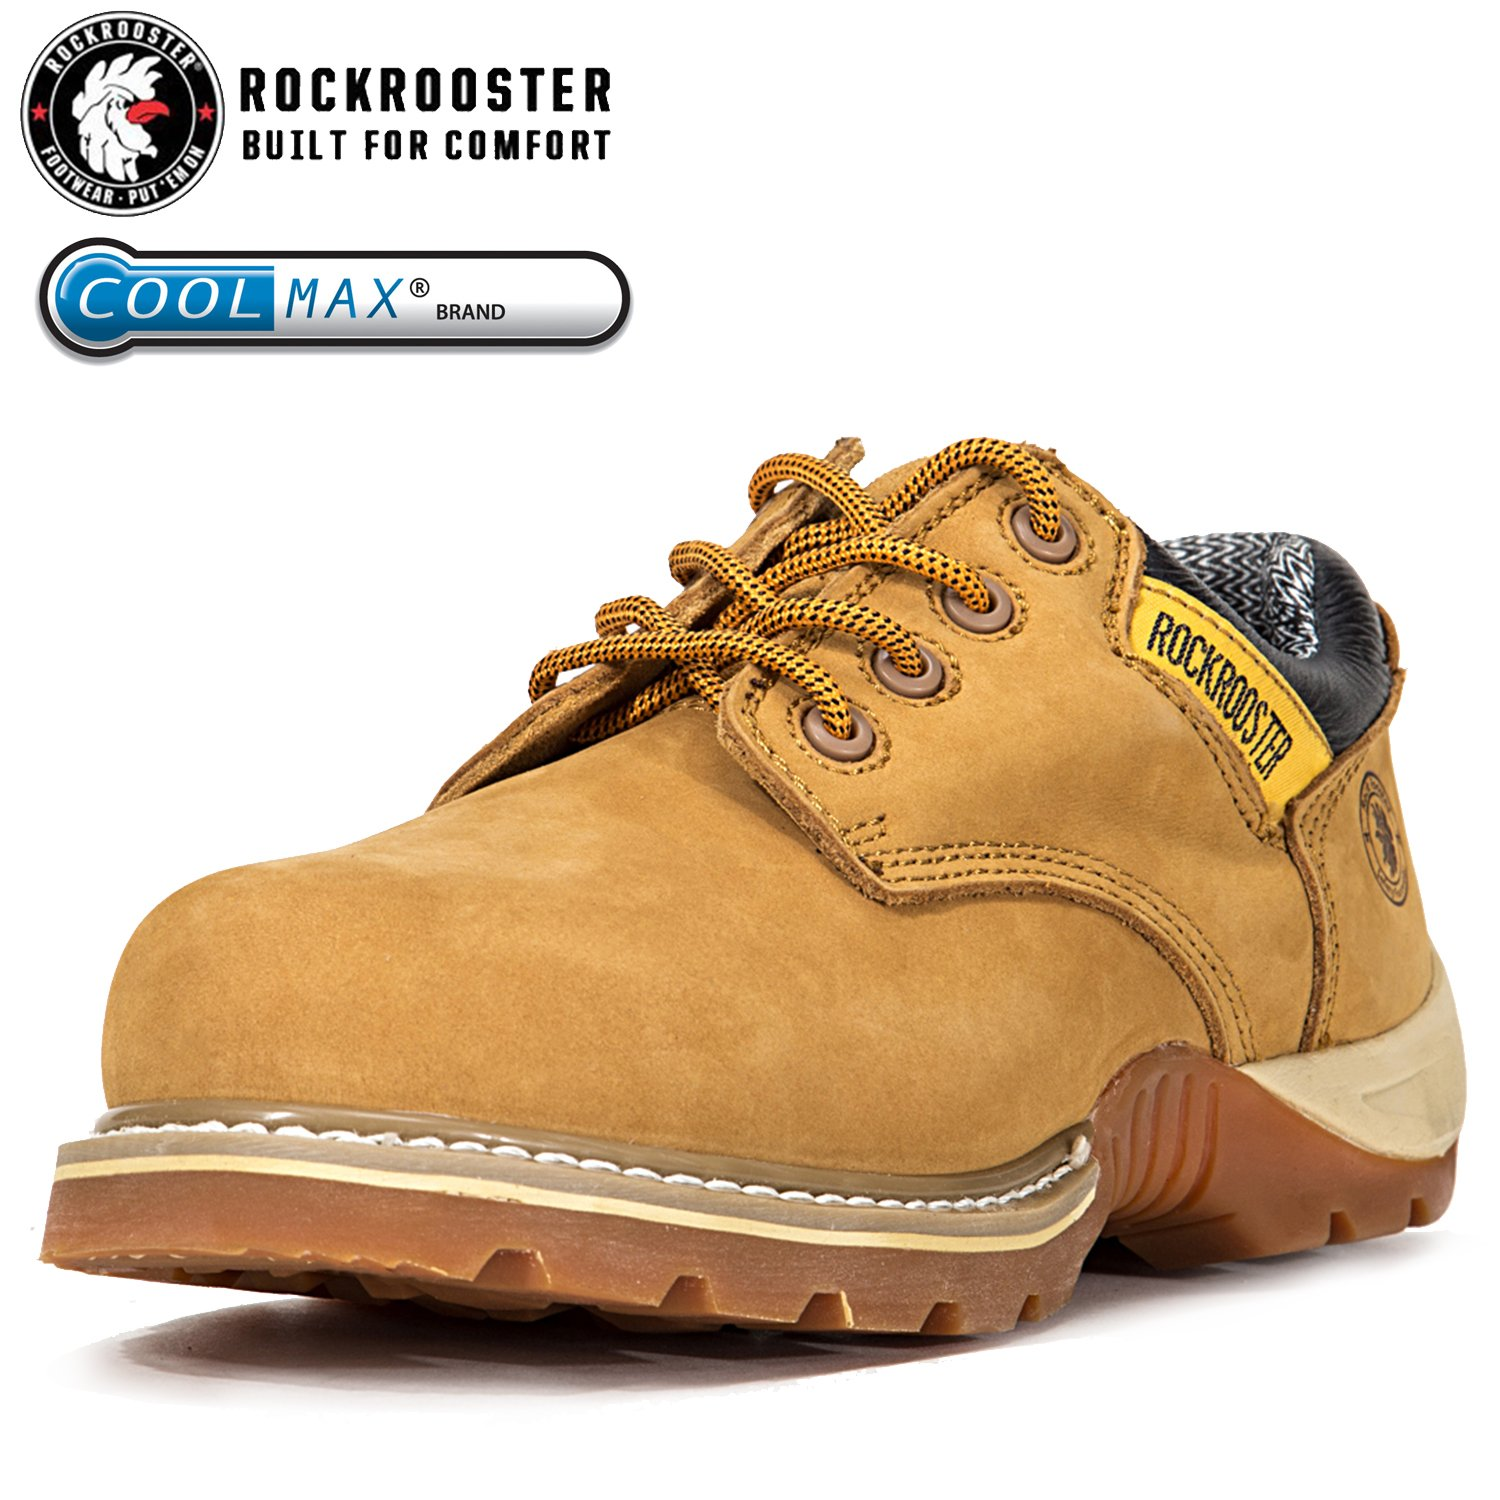 ROCKROOSTER Men's Work Boots, Composite/Steel Toe, Safety Water Resistant Leather, Women Shoes ltd